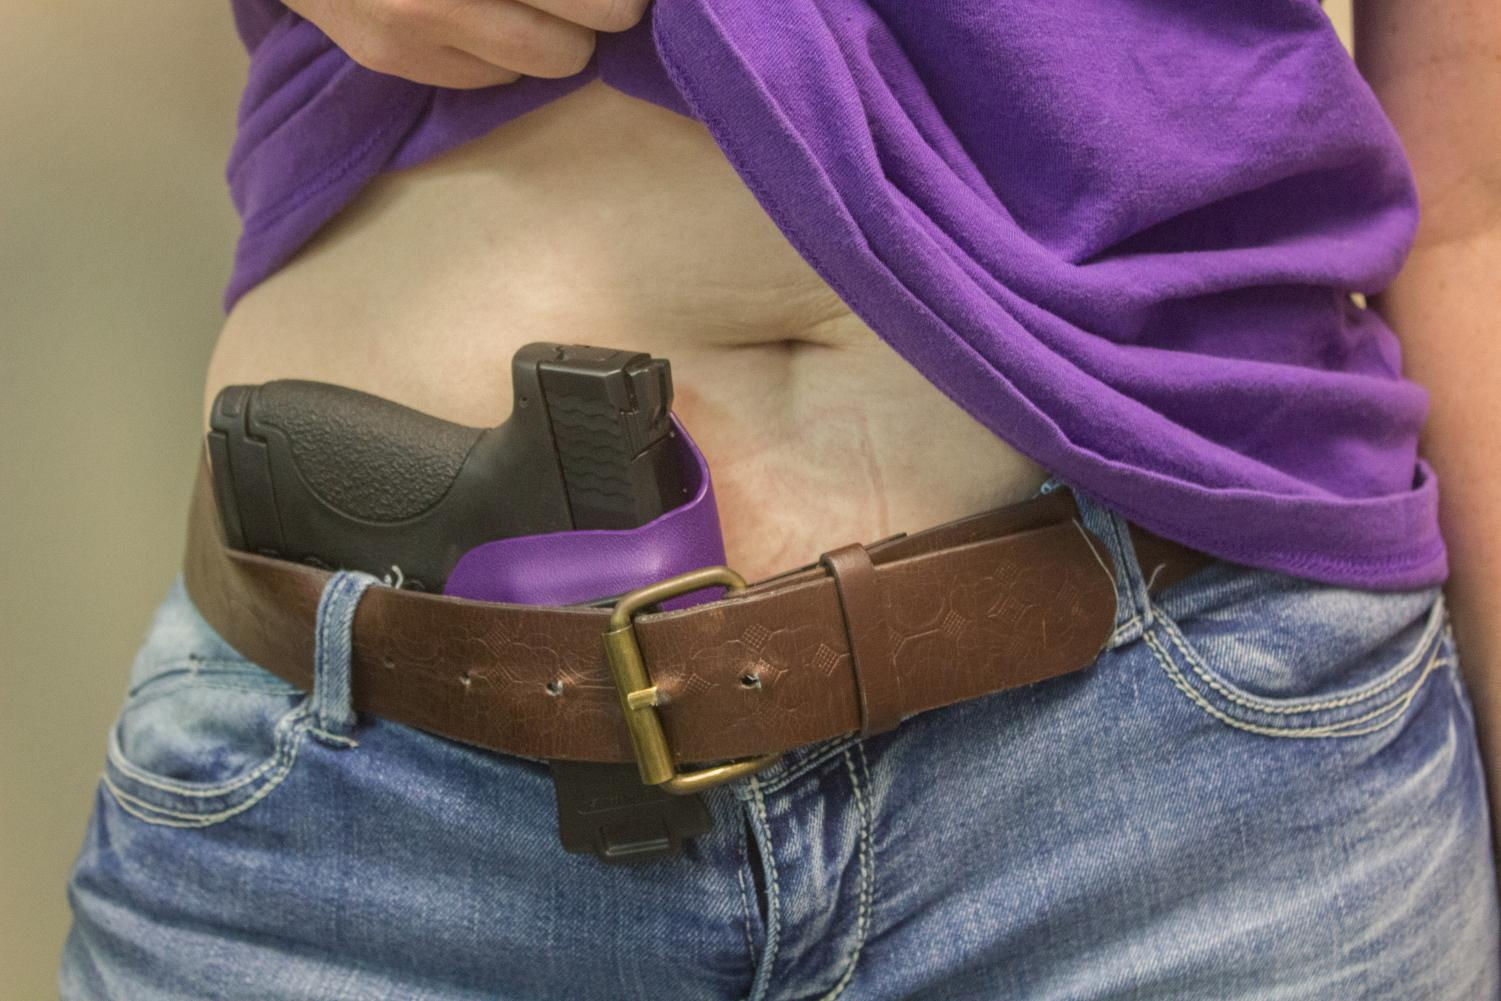 Example of a conceal carry position on an anonymous female model.